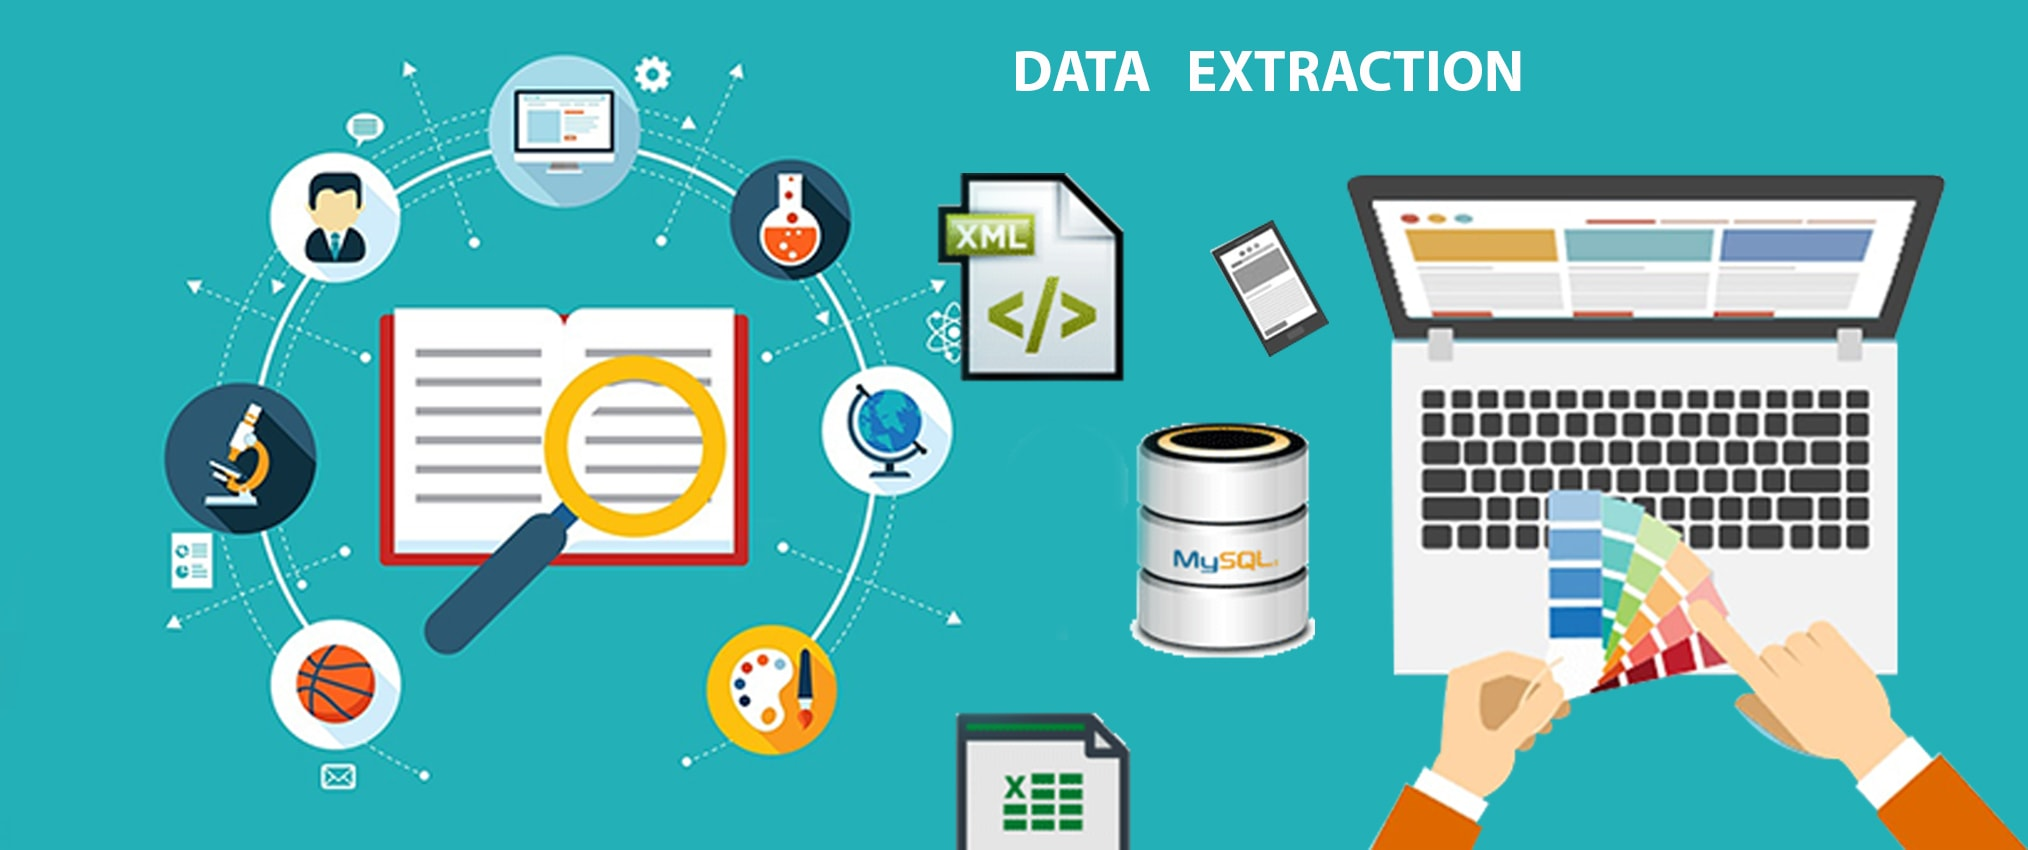 outsource-data-extraction-service-for-linkedIn-and-social-media